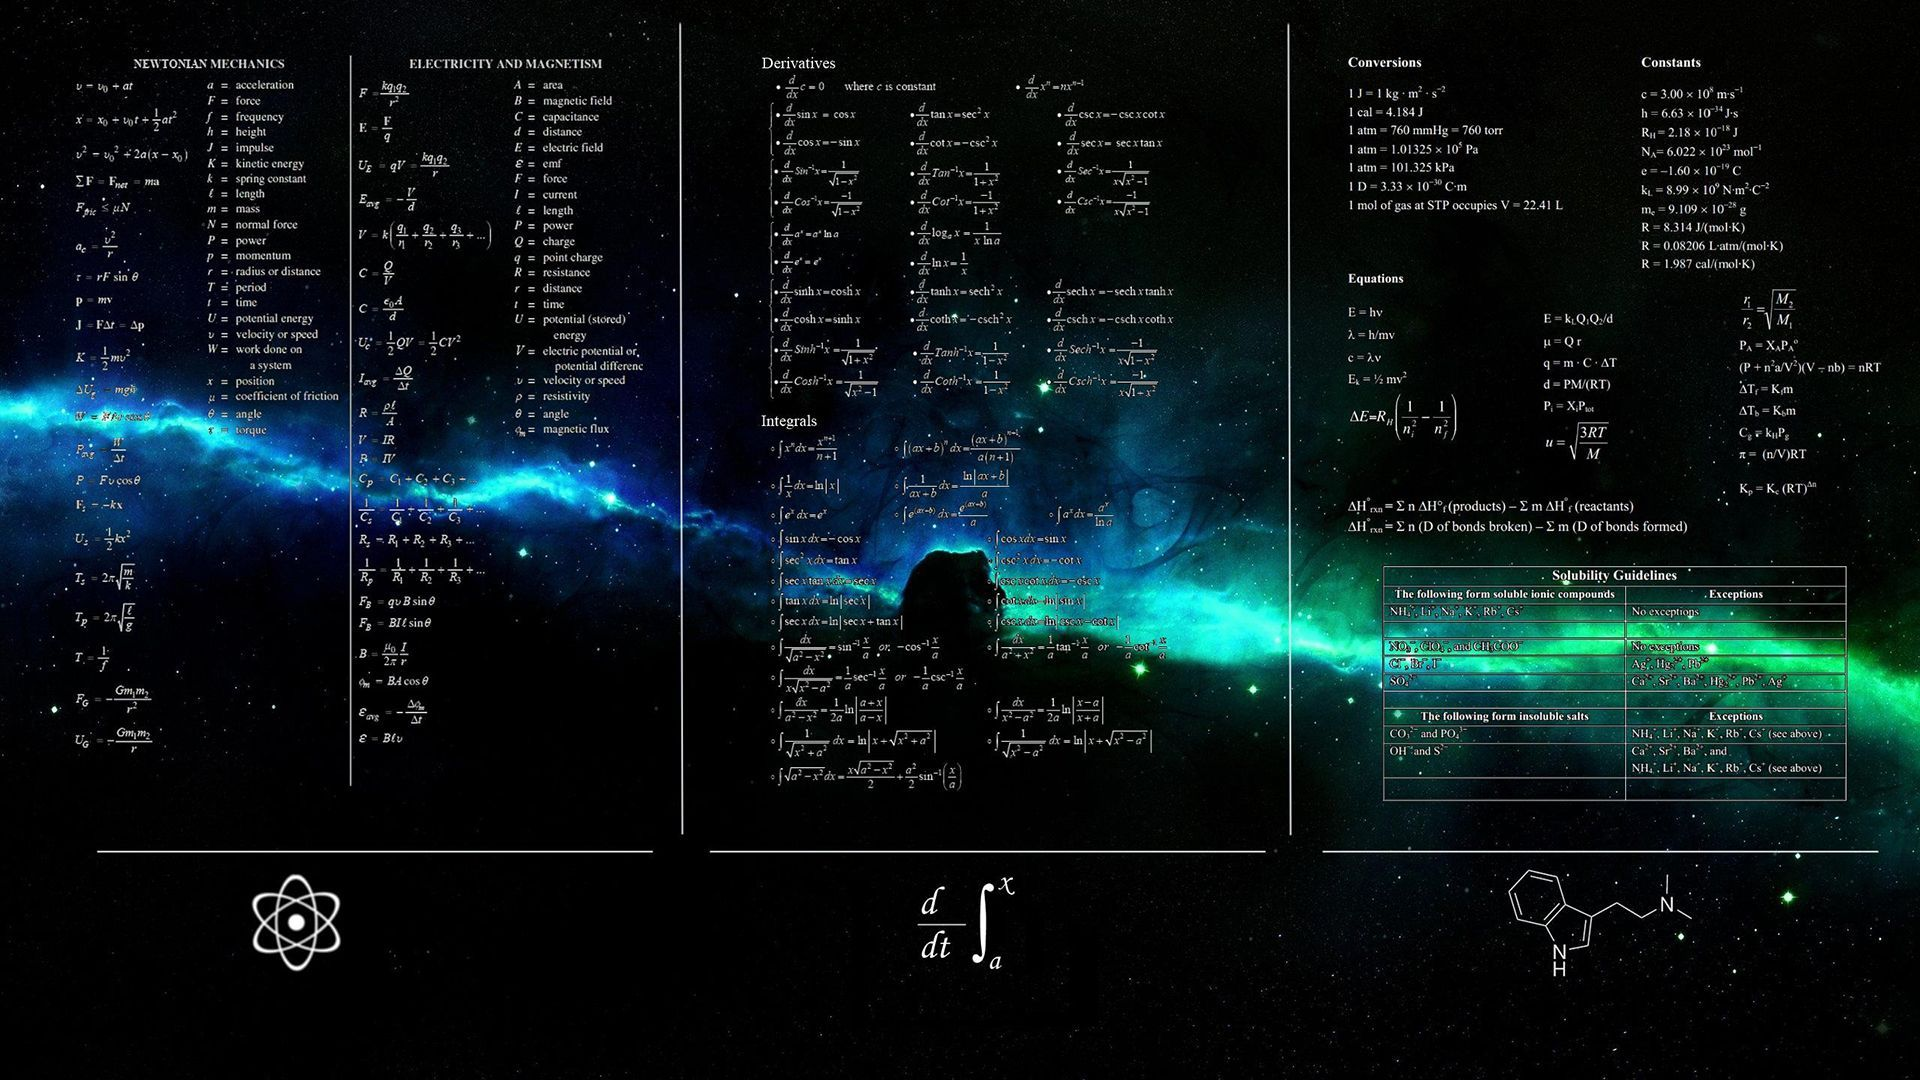 Nuclear Physics Wallpapers   Top Nuclear Physics Backgrounds 1920x1080